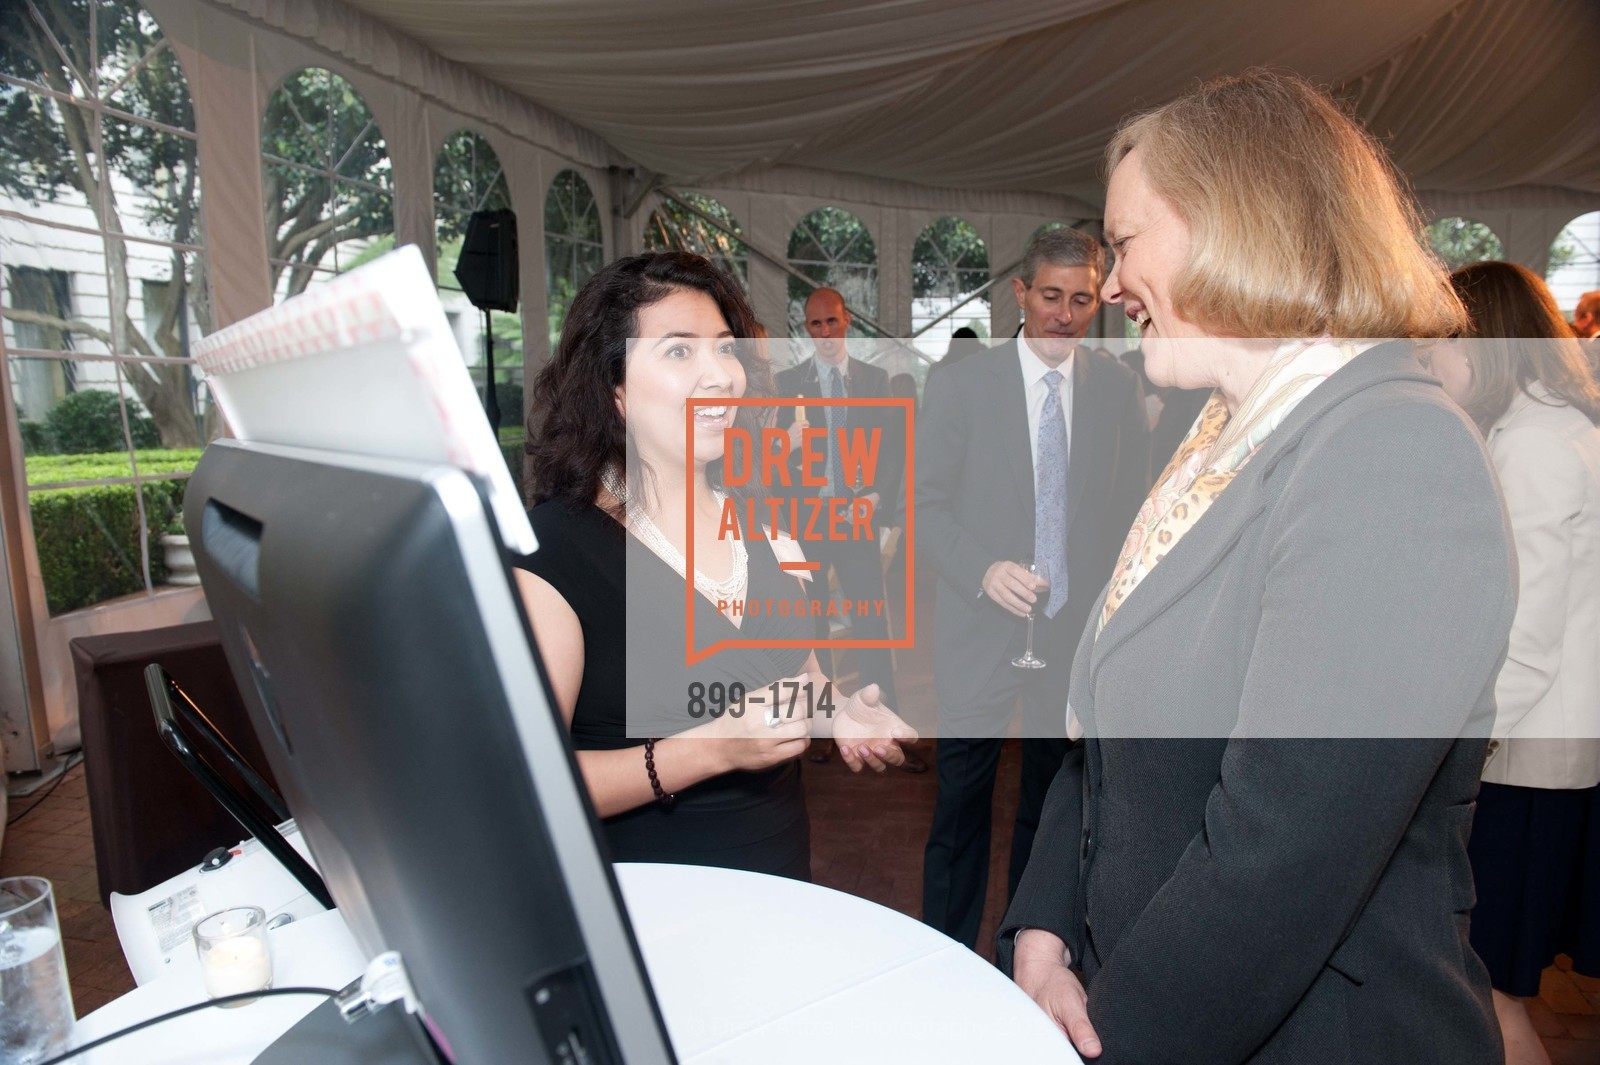 Maribel Lopez, Meg Whitman, Photo #899-1714